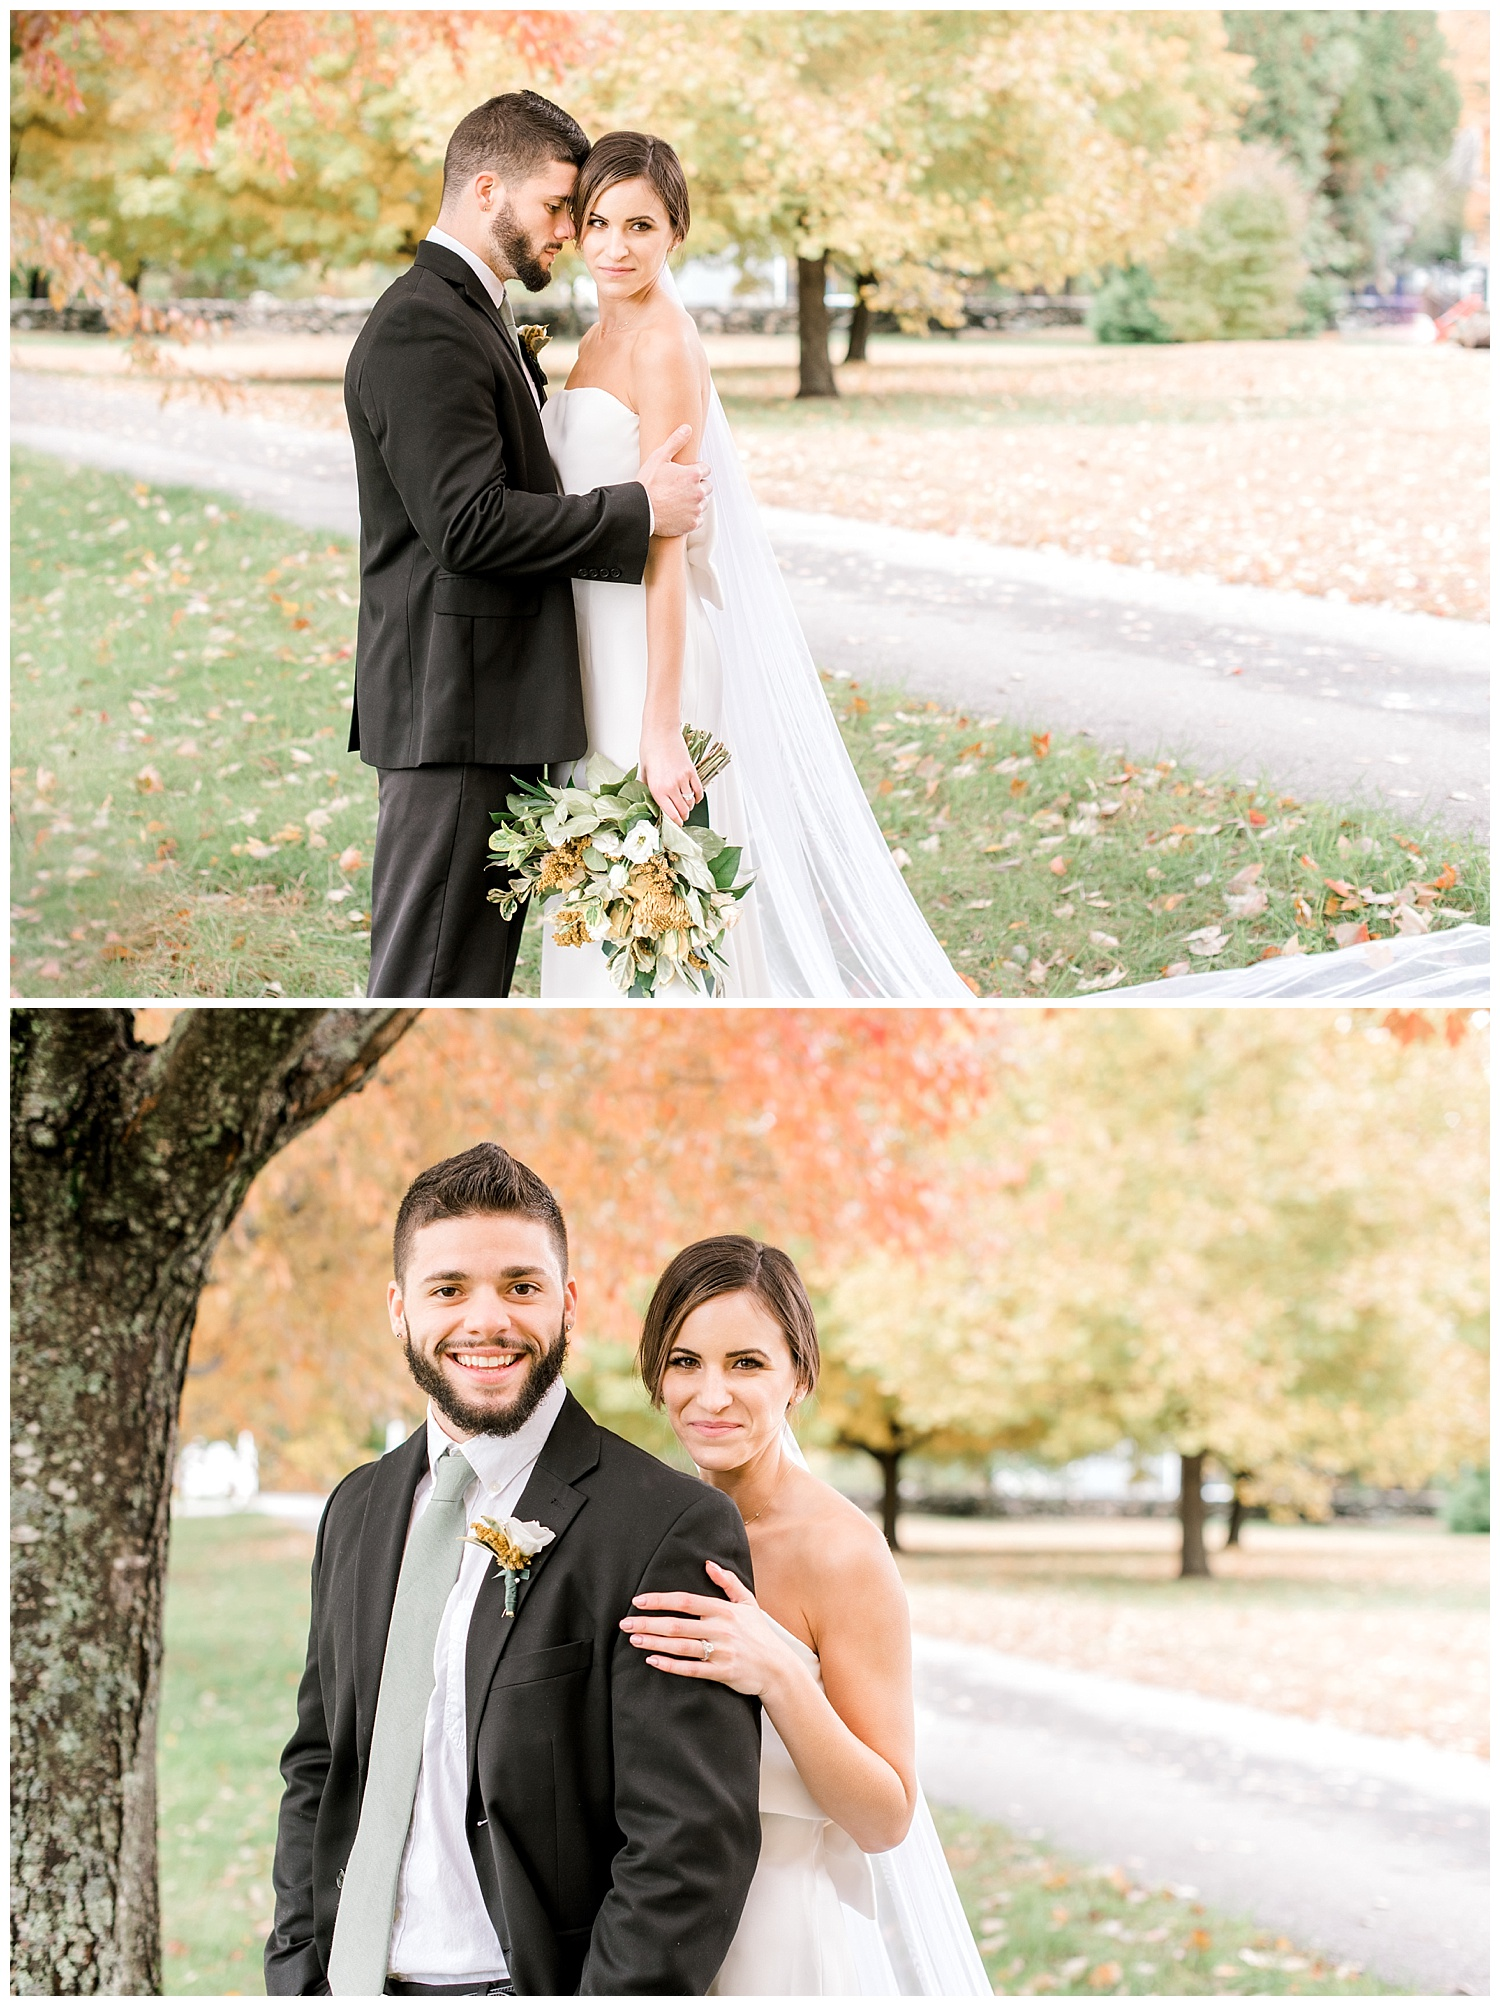 pompositticut-farm-fall-wedding-photography-hudson-massachusetts-photo-27.jpg